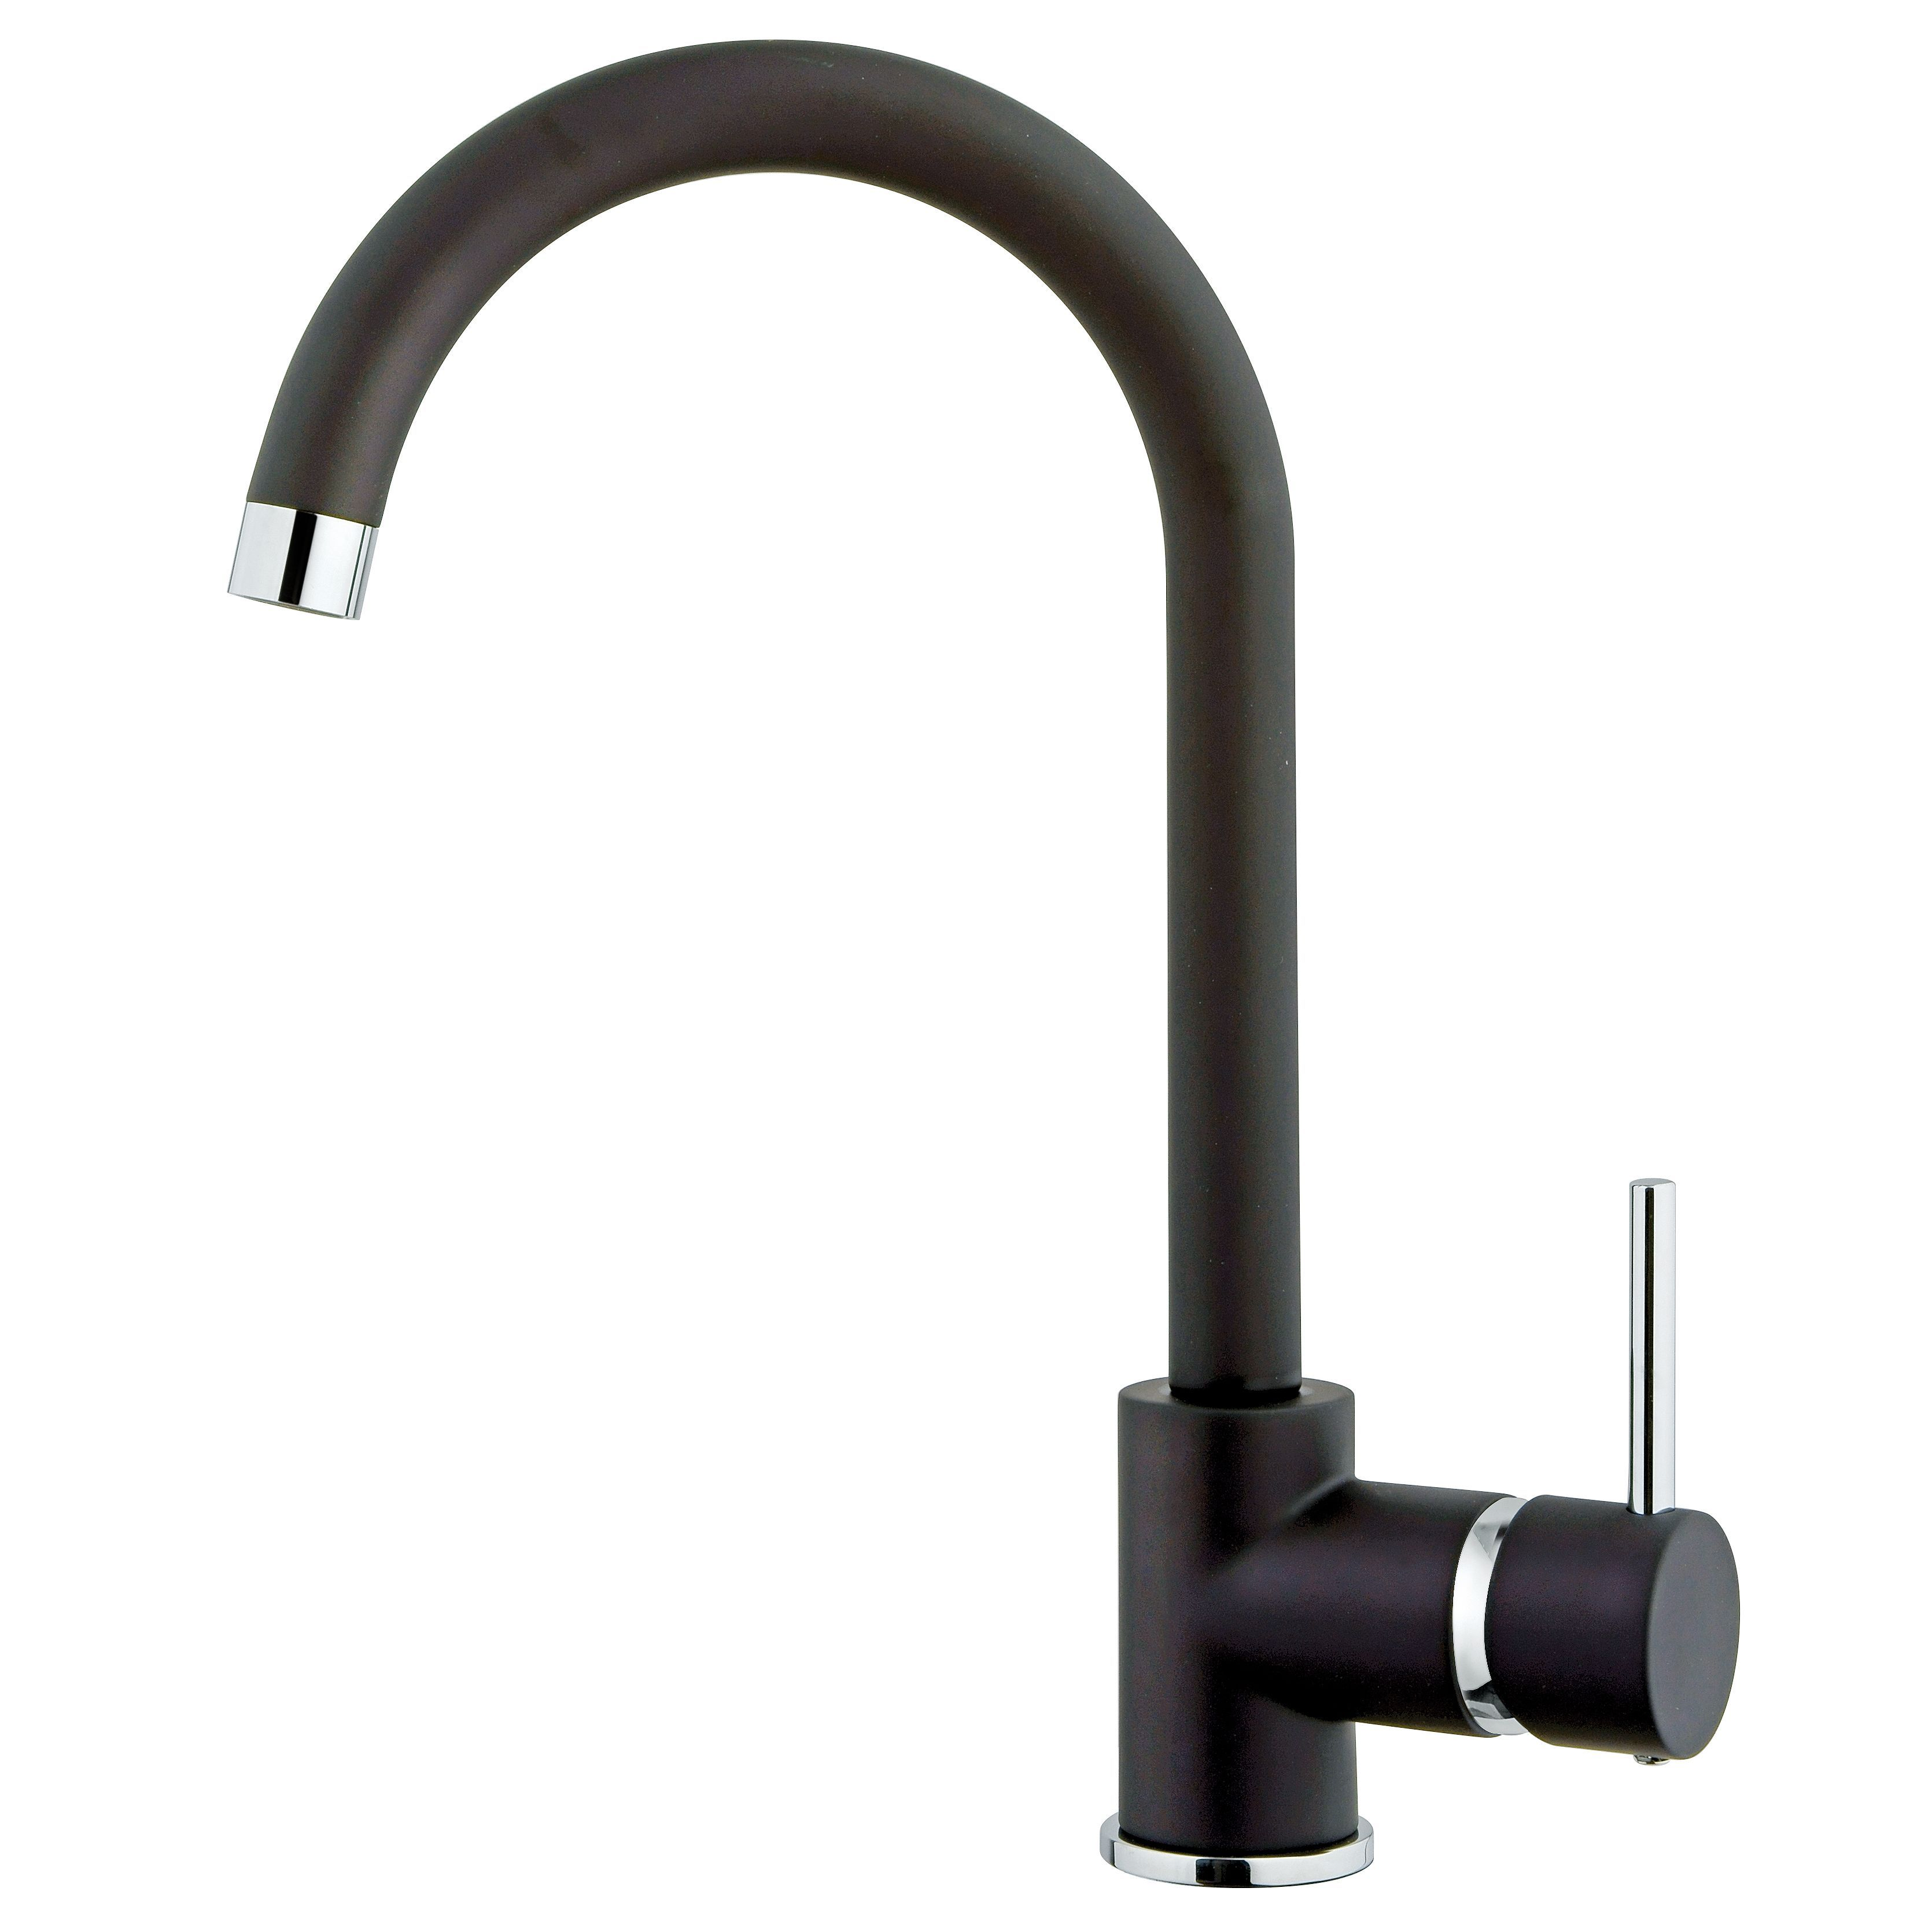 Cooke & Lewis Saru Lever Tap | Departments | DIY at B&Q | Kitchens ...